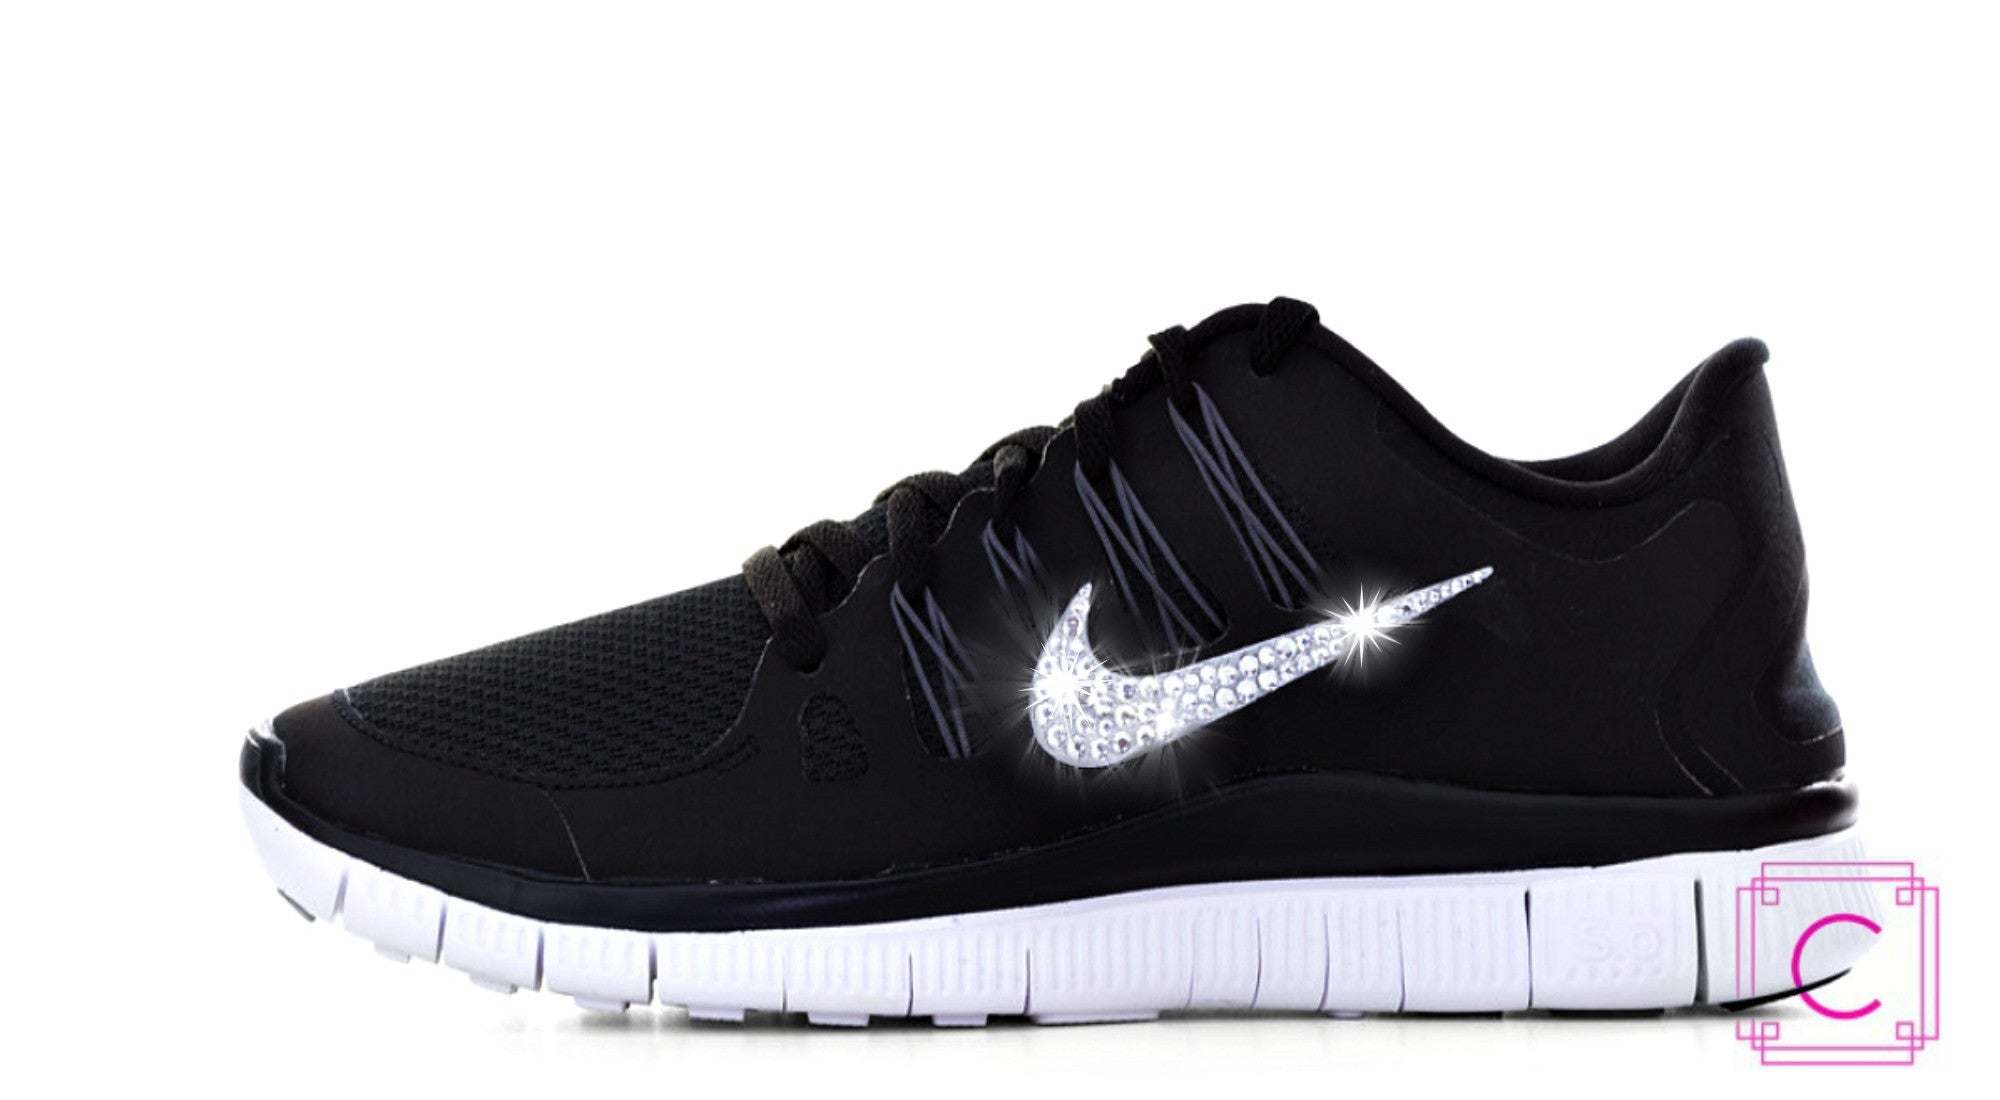 Women s Nike Free Run 5.0 in Black with SWAROVSKI Crystal Details c20896d192